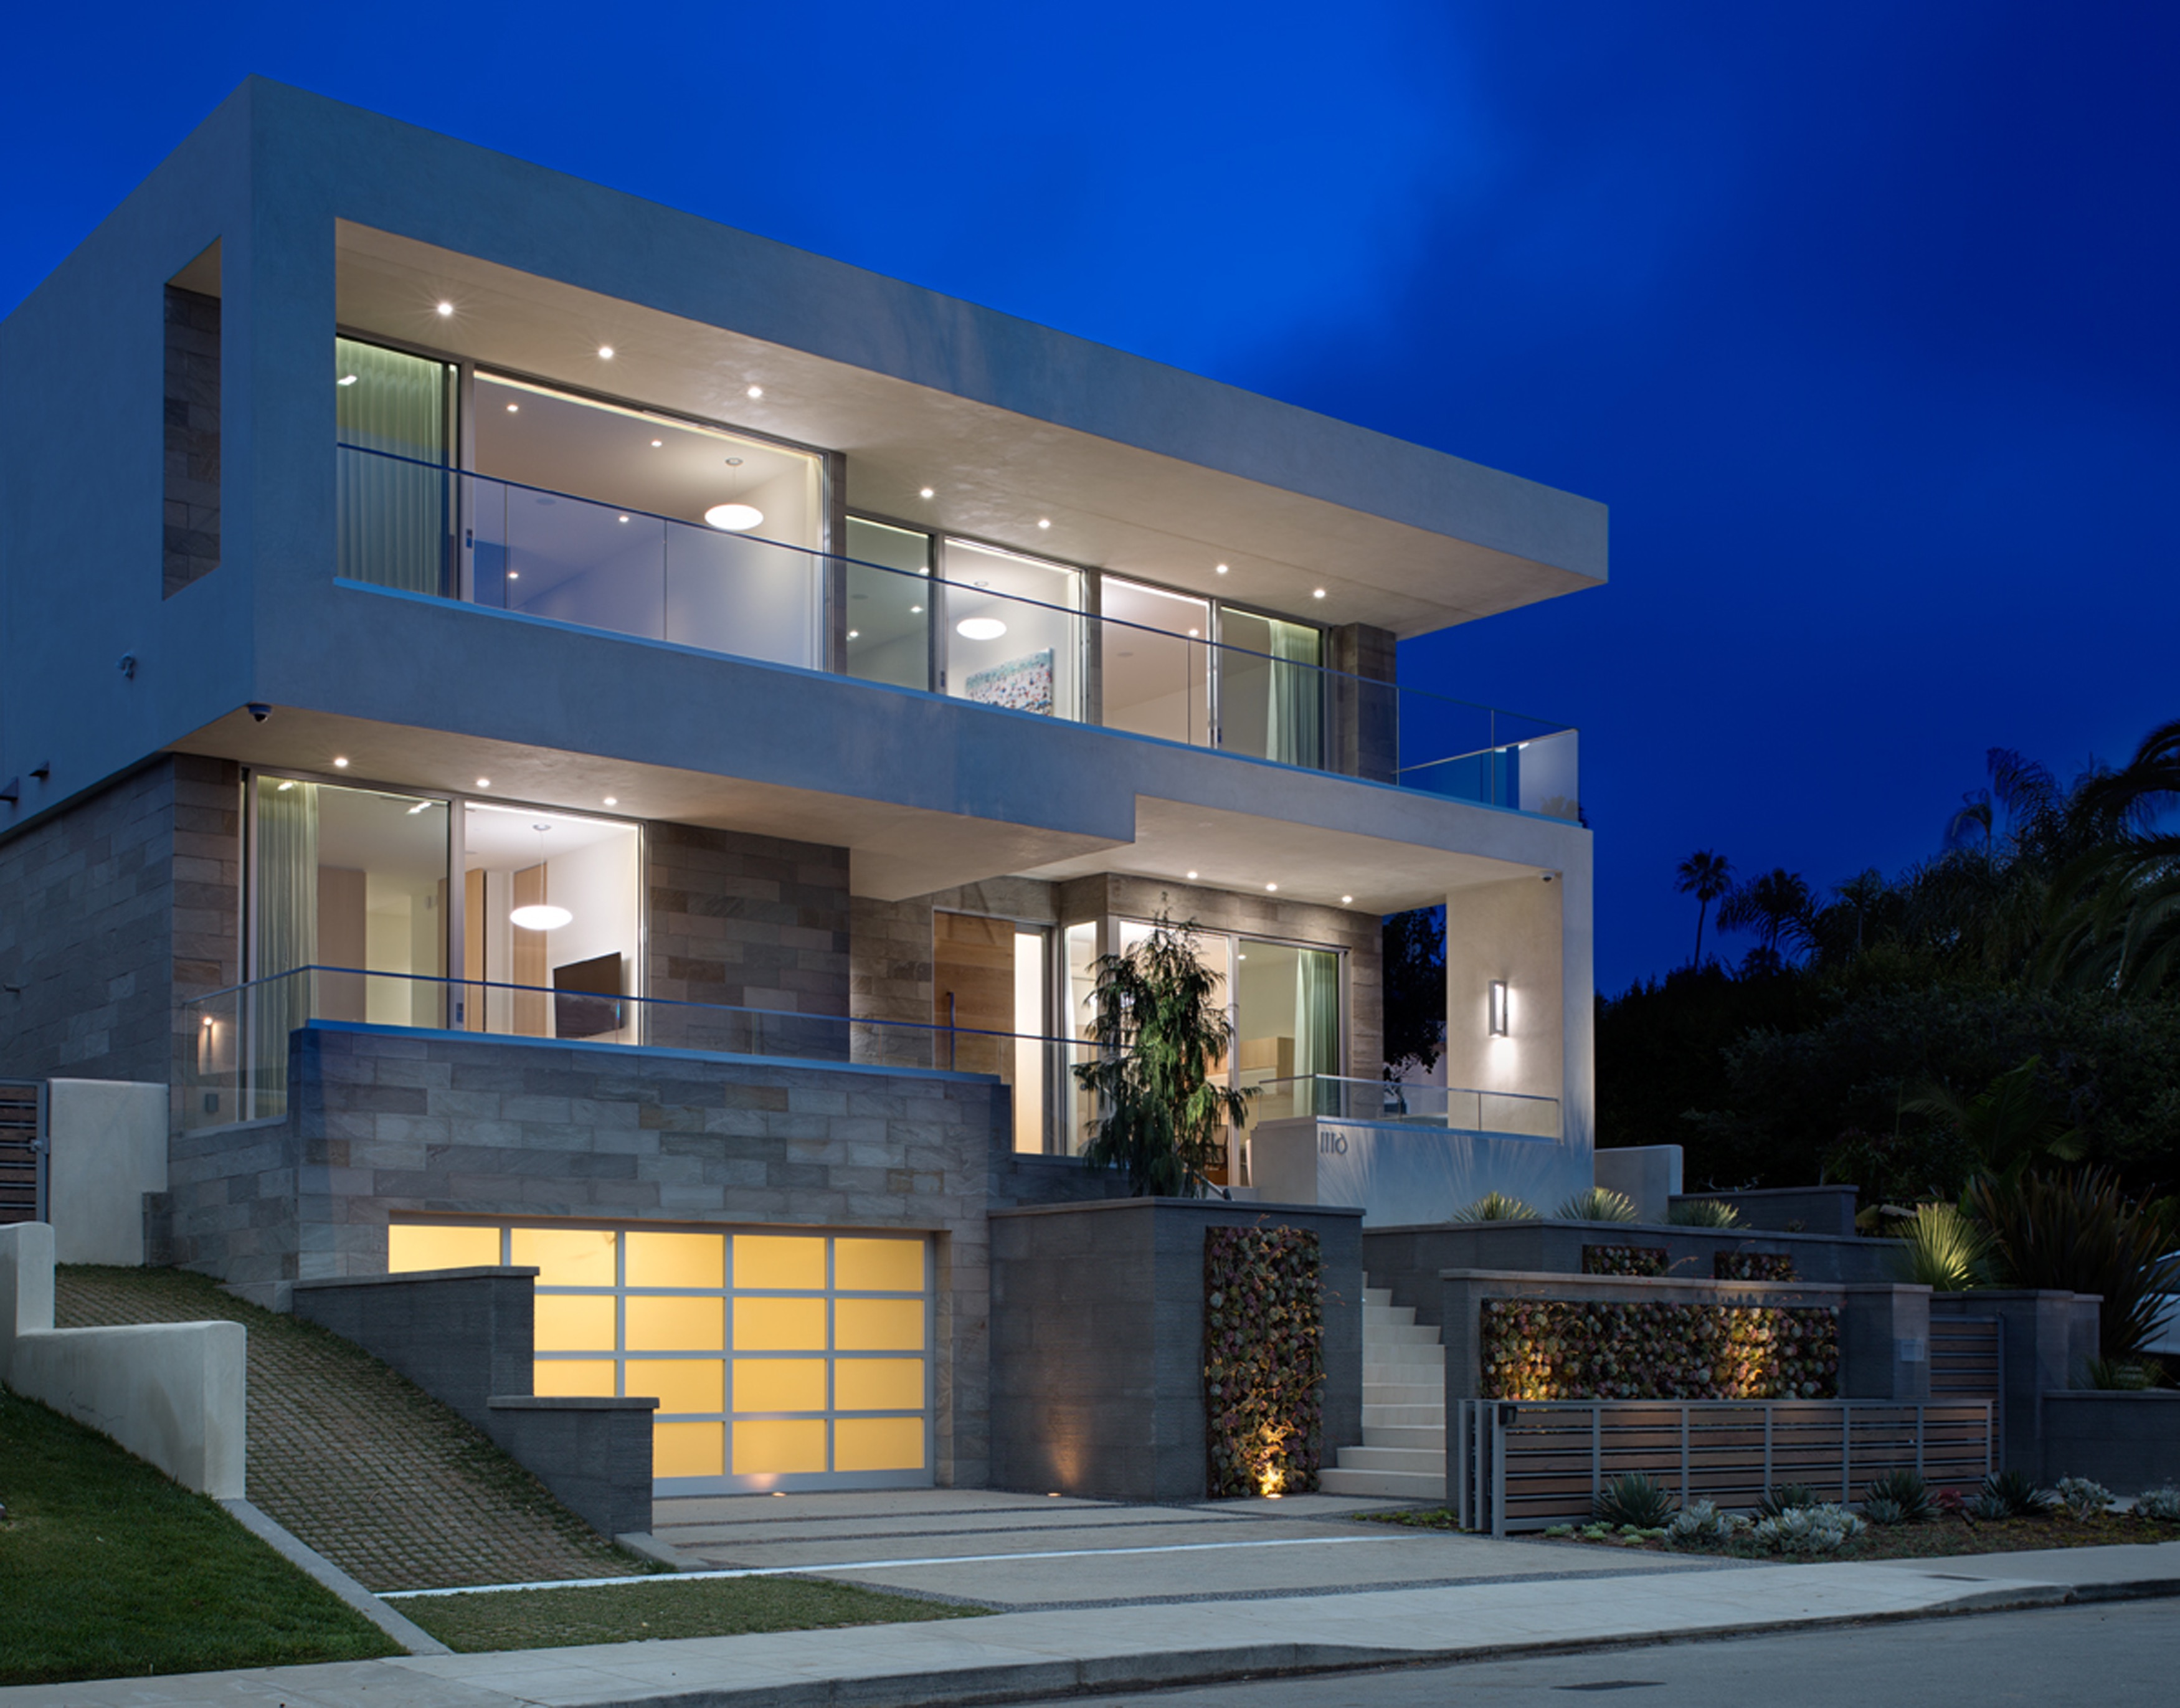 Fascinating Modern House Exterior Architecture 17213